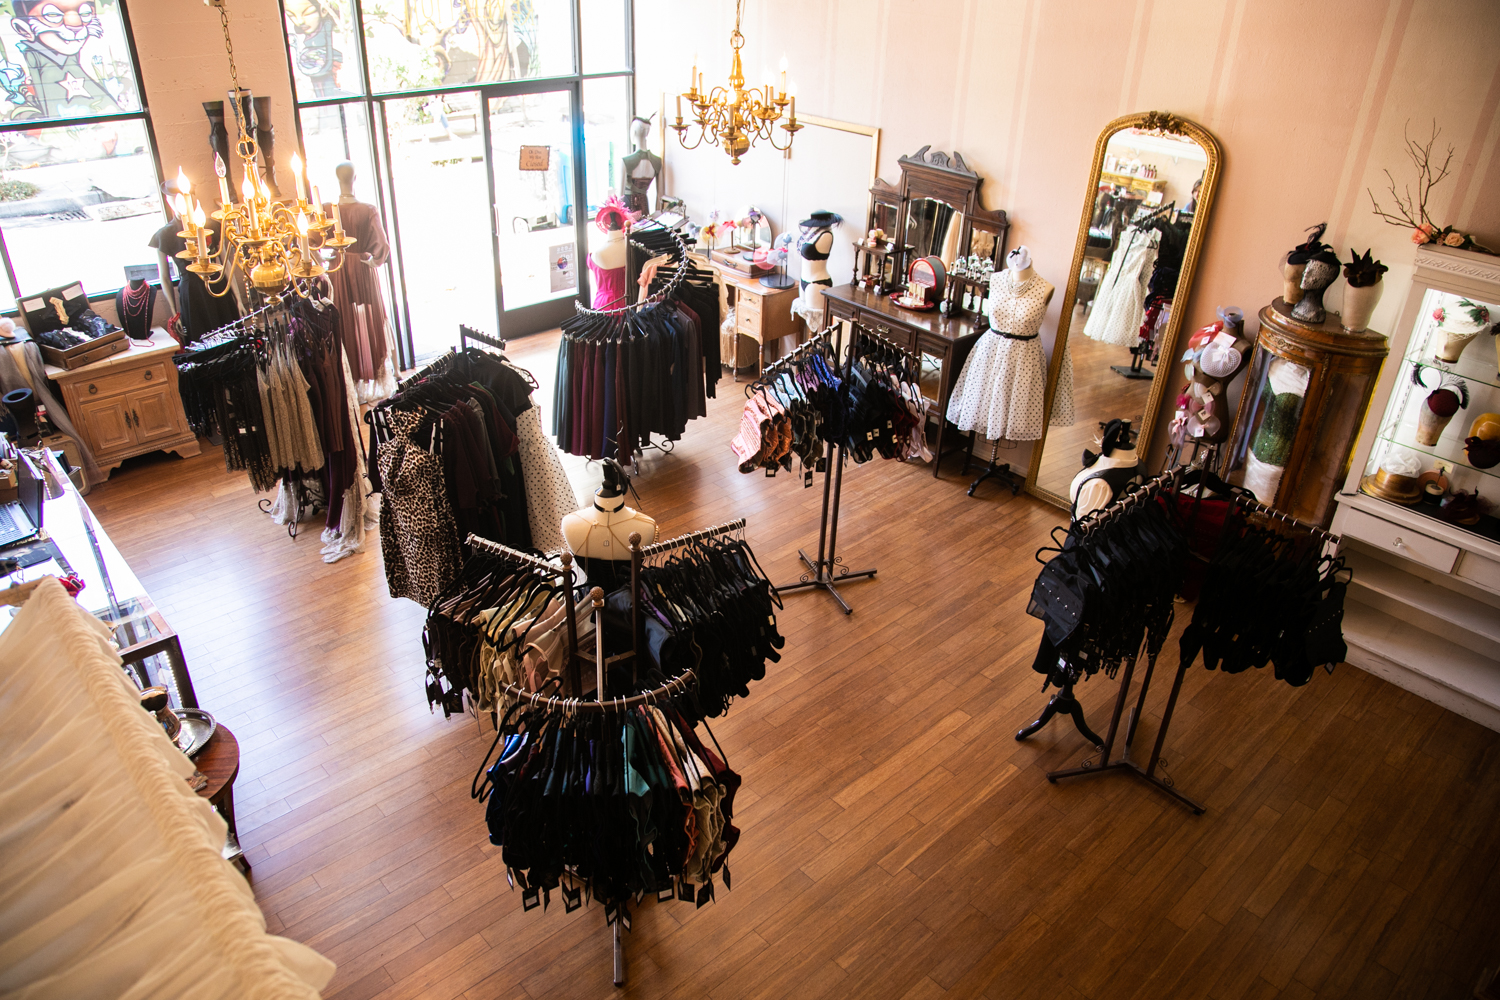 Boutique Hours - Sunday through Thursday, 11am to 5pmFriday 11am to 6pm & Saturday, 10am to 6pmBook an AppointmentWalk-ins welcomed